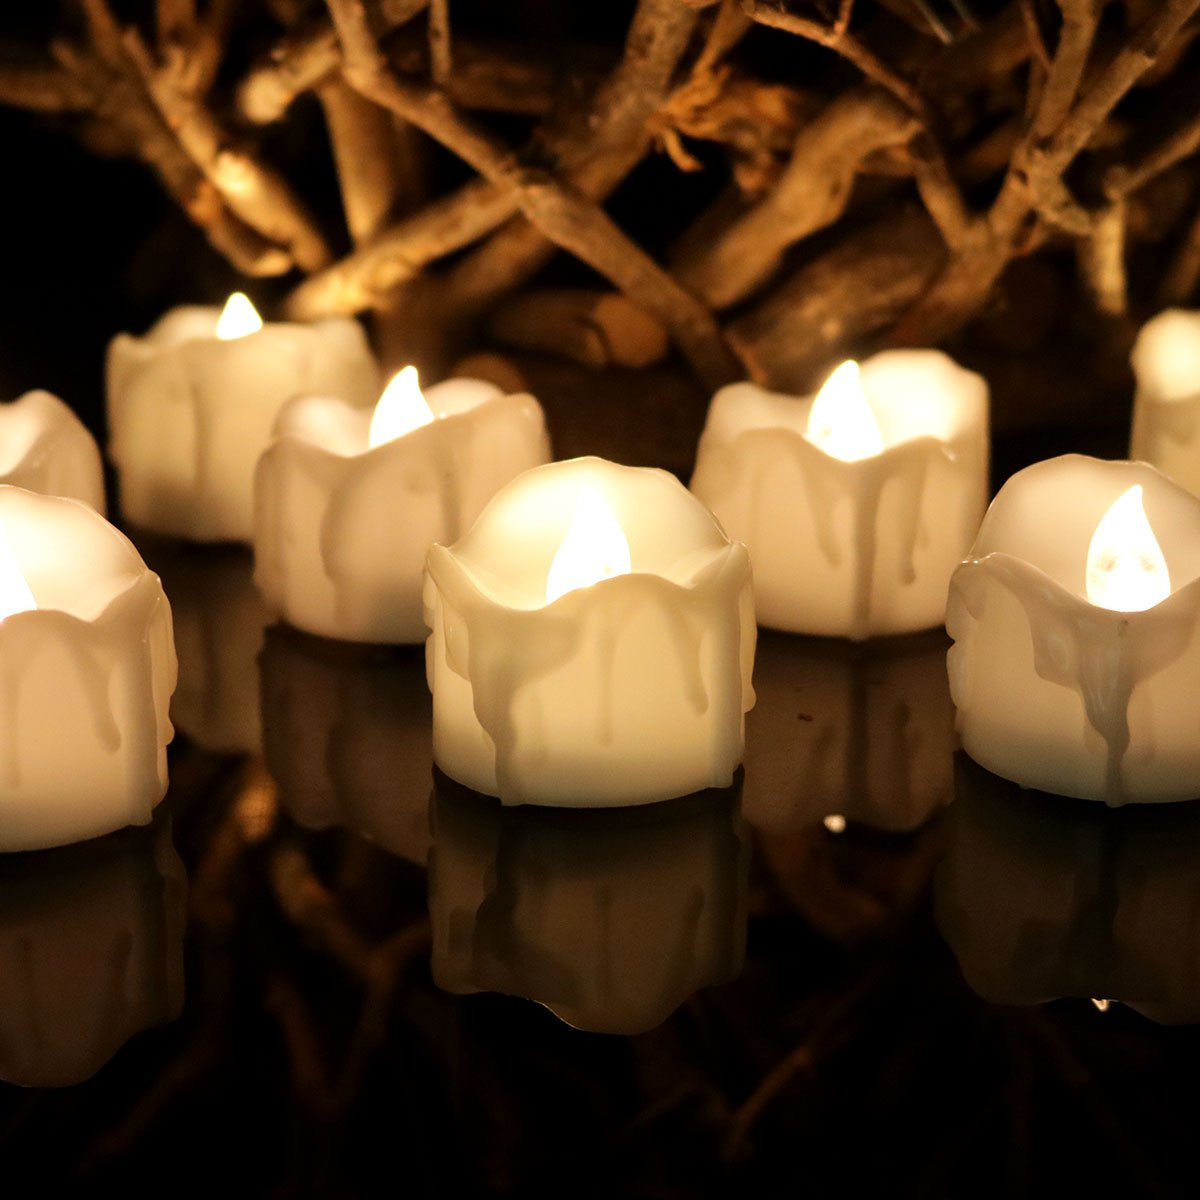 Youngerbaby 12pcs Warm White Flickering Tea Light Candles with Decor Rose Petals, Flameless Wax Dripped Battery-Powered LED Tealights For Wedding Christmas, Party, Room and Back Yard